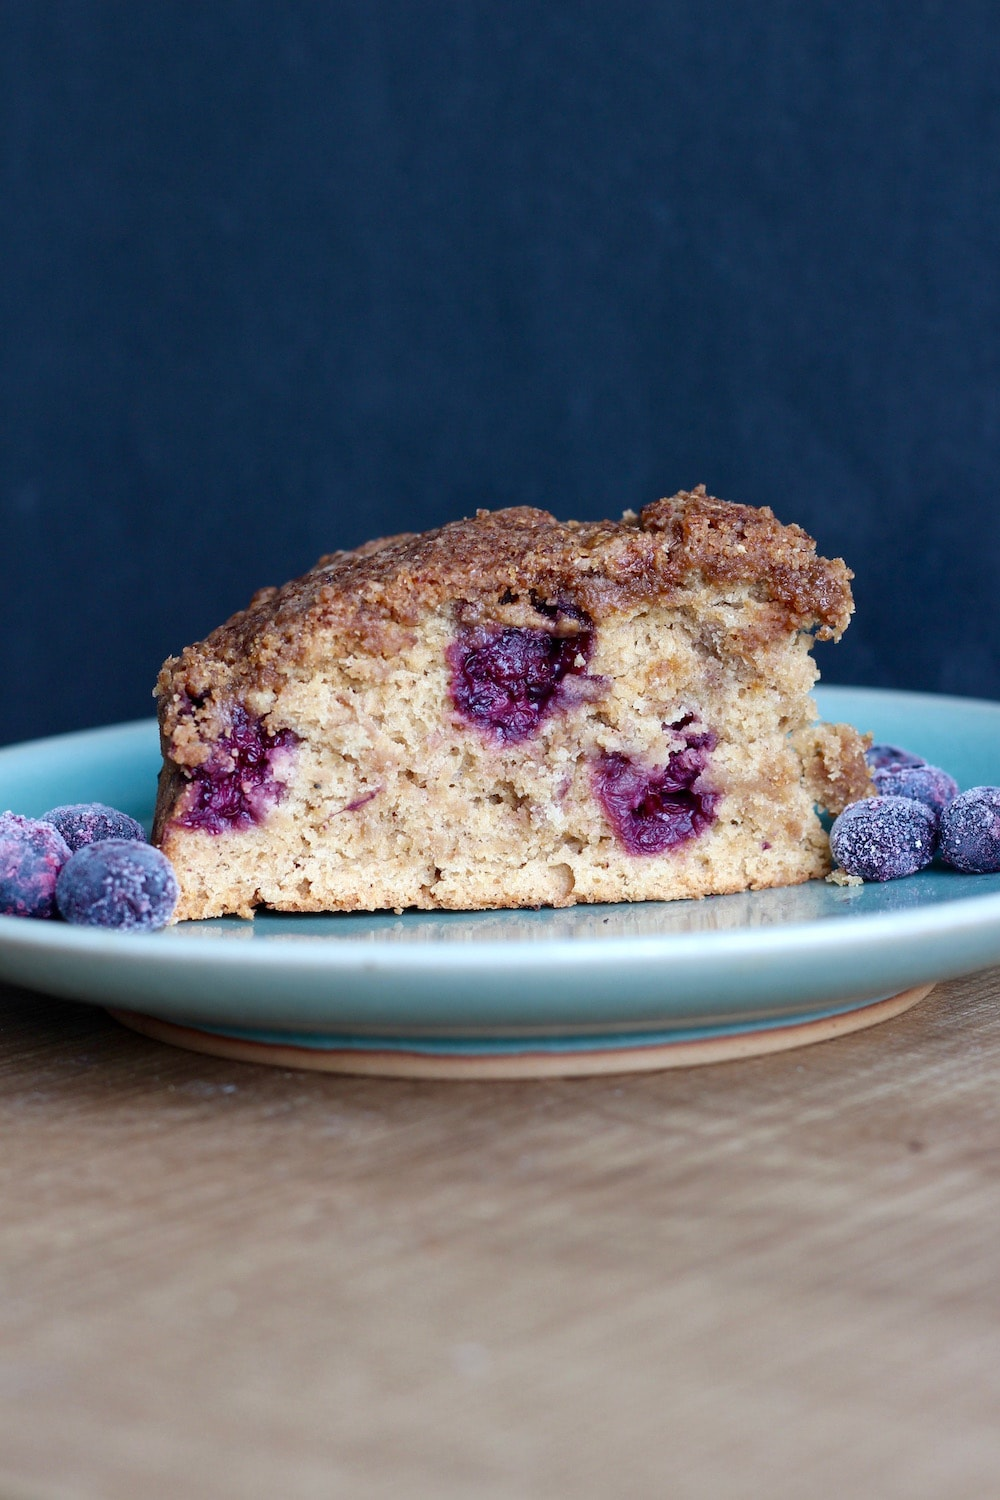 Vegan Blueberry Coffee Cake on plate a plate with more blueberries